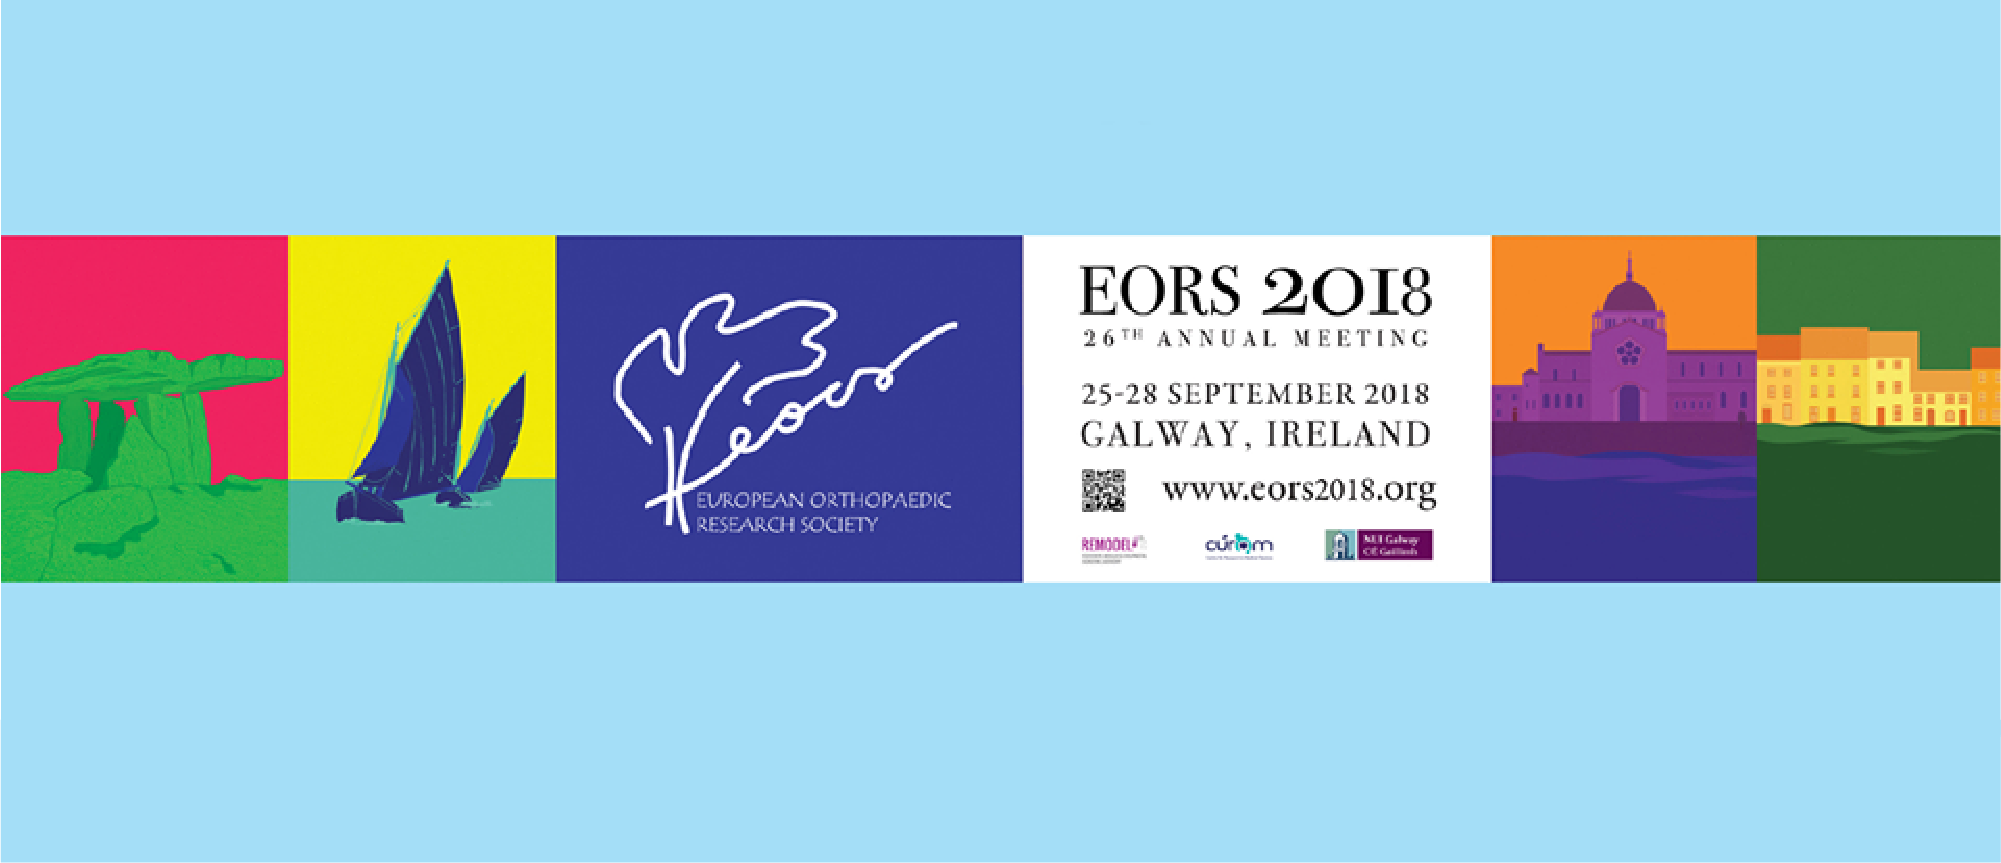 EORS 2018 26th Annual Meetign 25-28 September 2018, Galway, Ireland